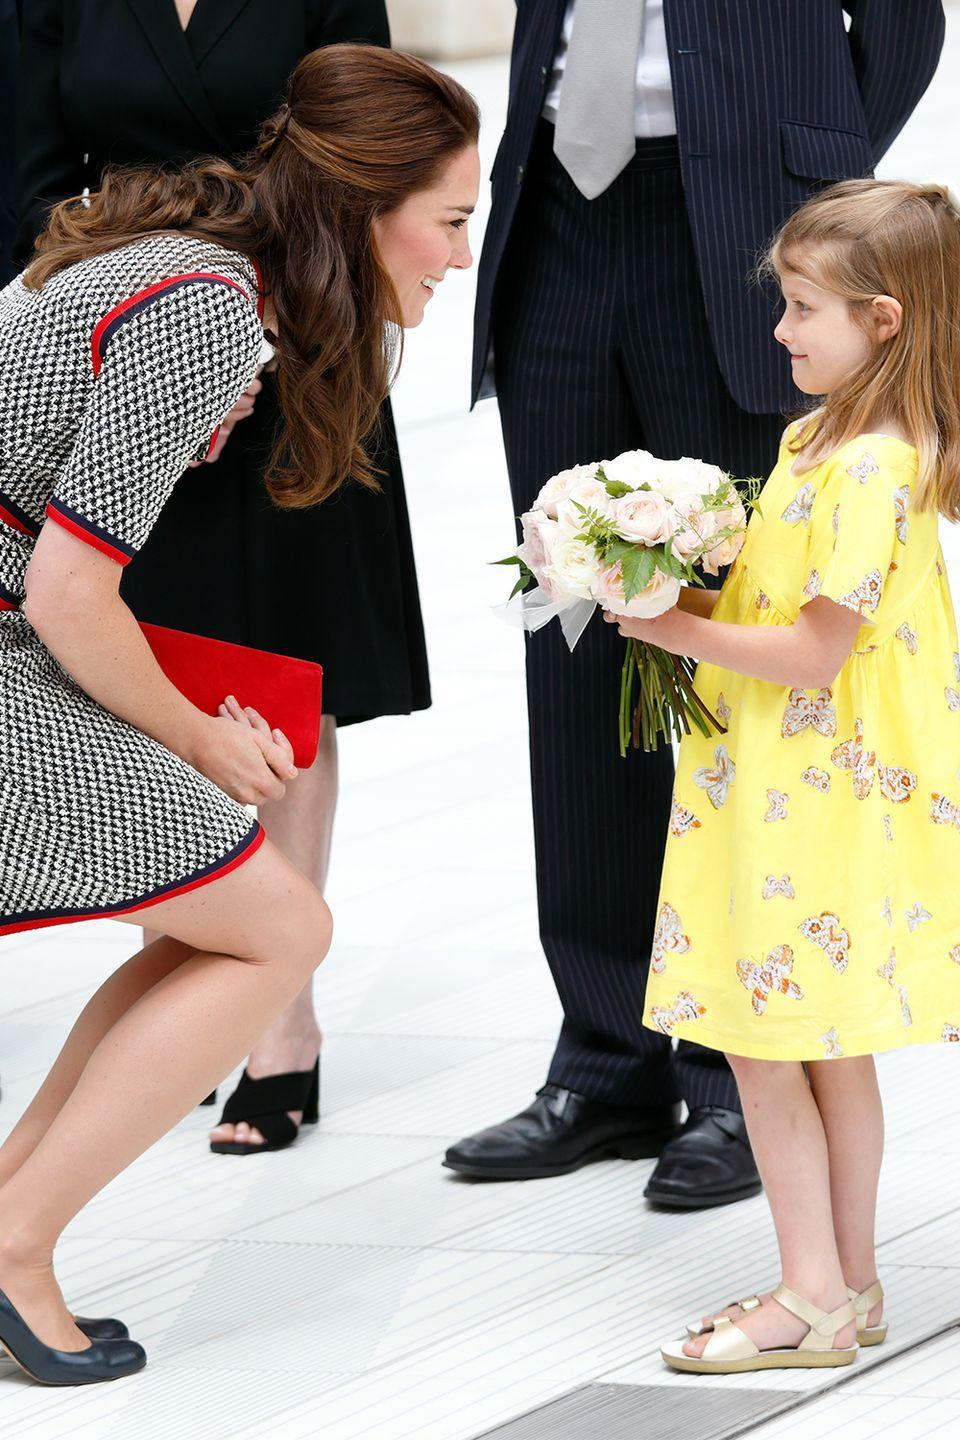 """<p>""""When you see Kate kneeling to talk to someone, it is very reminiscent of Diana—throughout her life,"""" <a href=""""https://abcnews.go.com/International/rebel-royal-mum-dianas-legacy-parent/story?id=19241646"""" rel=""""nofollow noopener"""" target=""""_blank"""" data-ylk=""""slk:Seward added"""" class=""""link rapid-noclick-resp"""">Seward added</a>. </p>"""